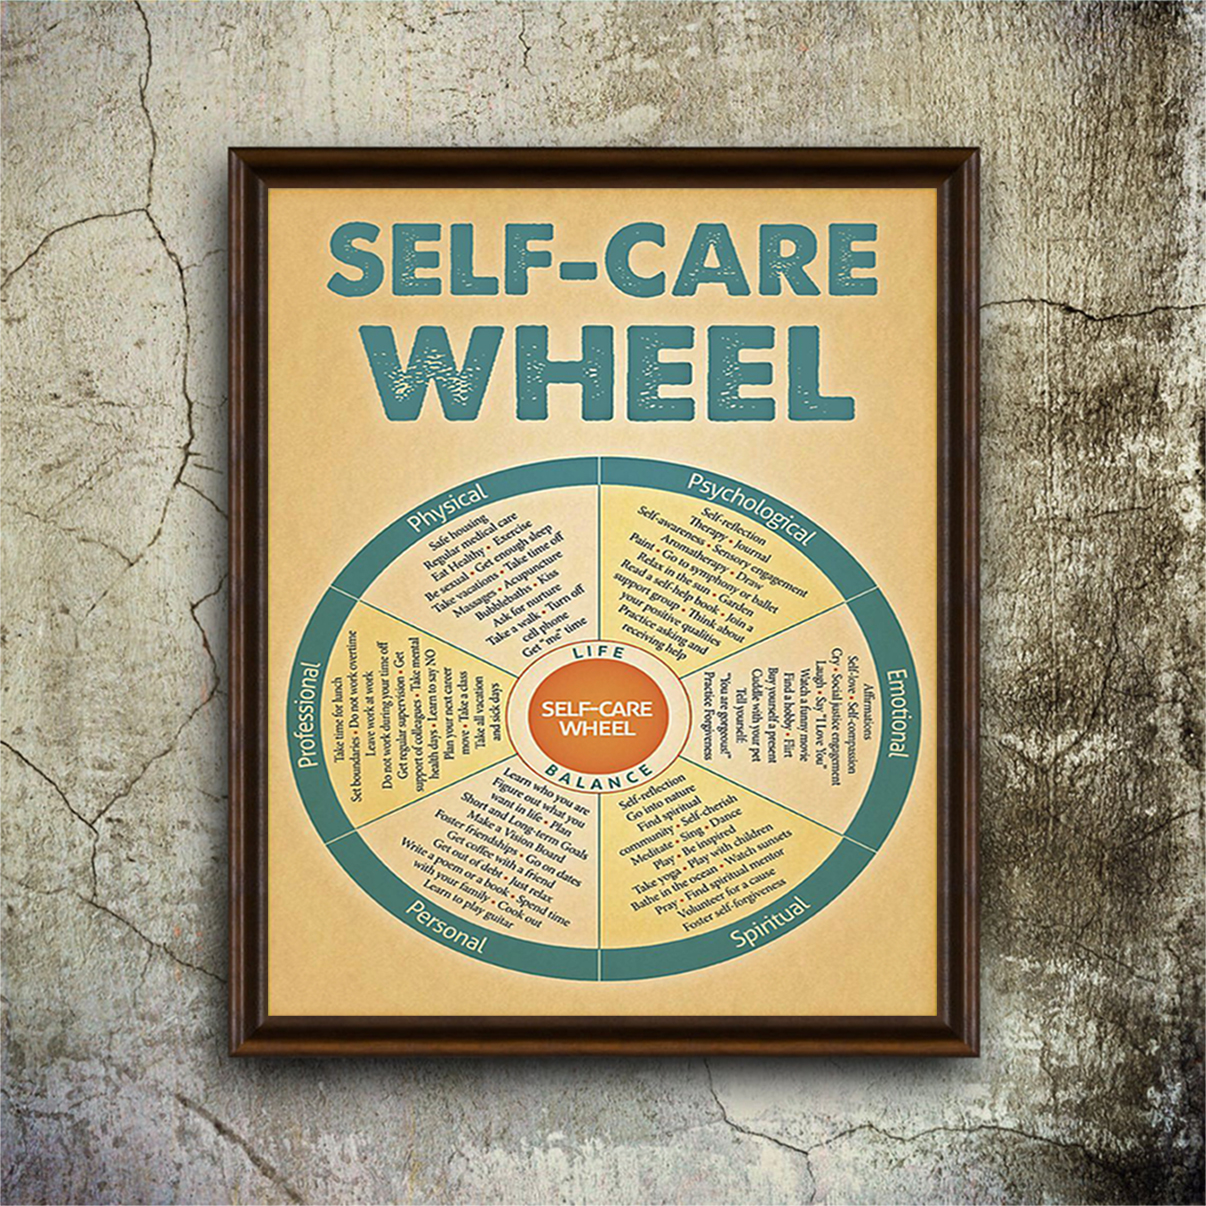 Poster social worker self-care wheel A2